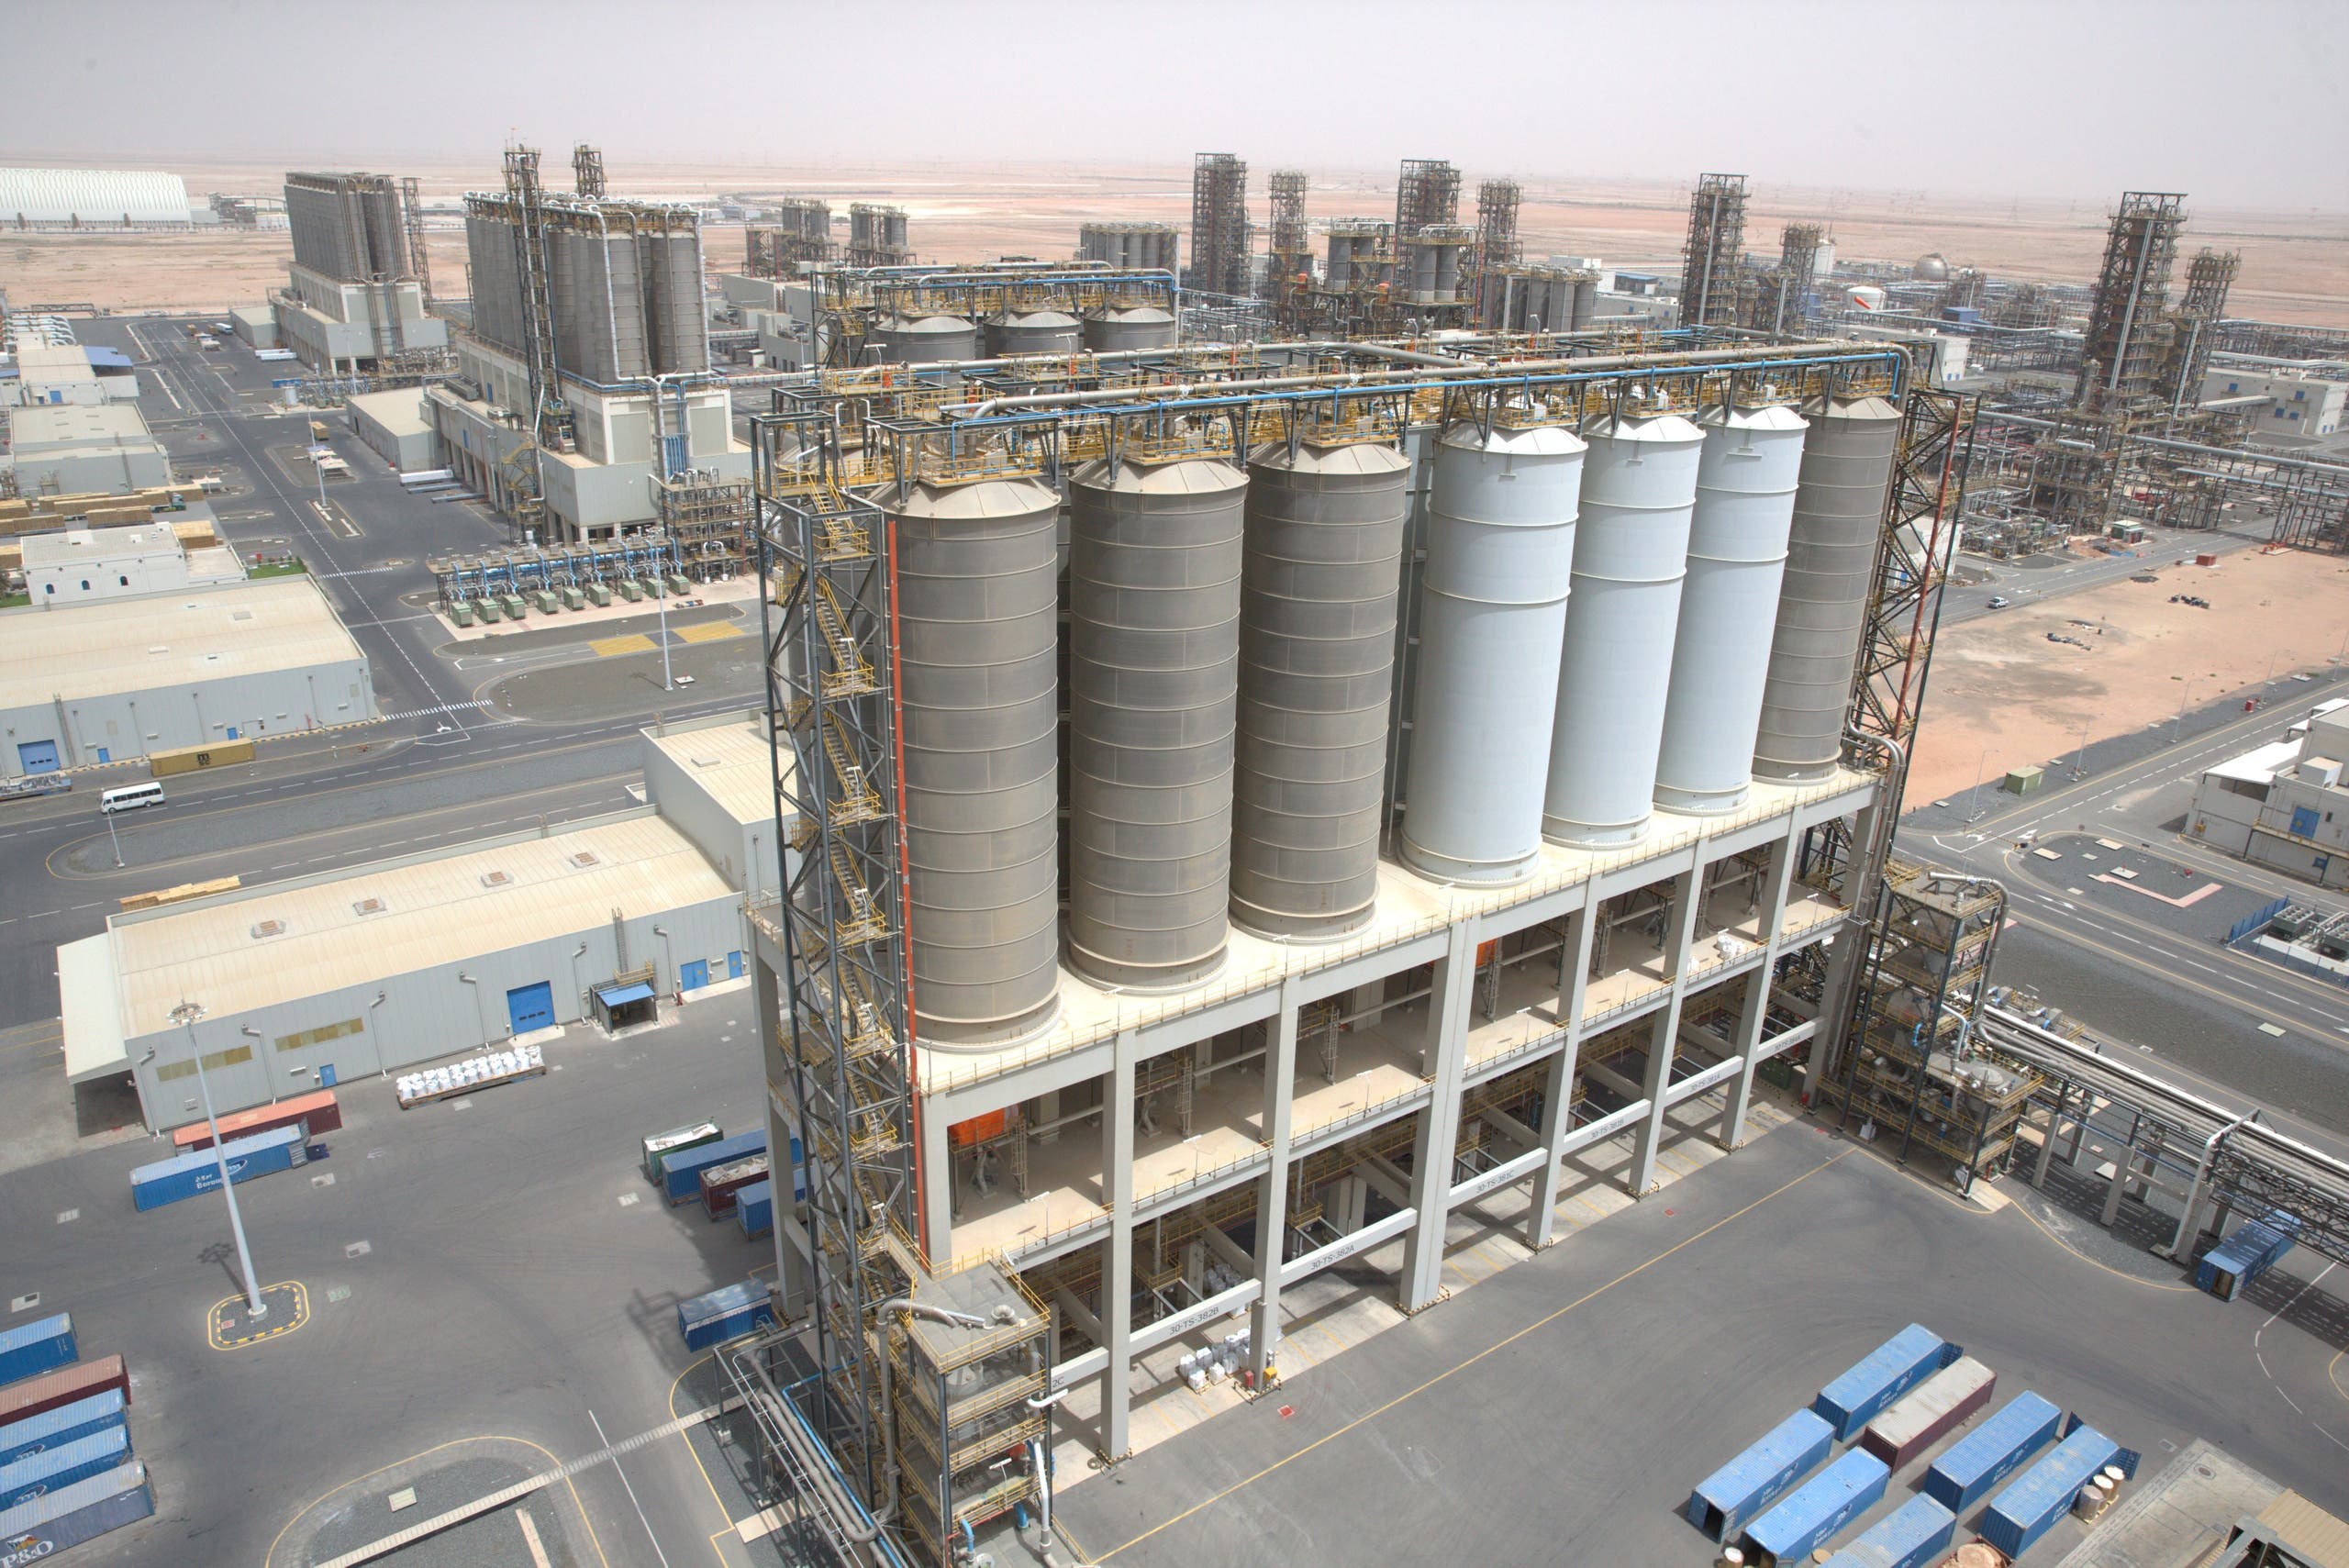 General view of the Borouge petrochemical facility at ADNOC's Ruwais Industrial Complex in Ruwais, United Arab Emirates May 14, 2018. (File photo: Reuters)